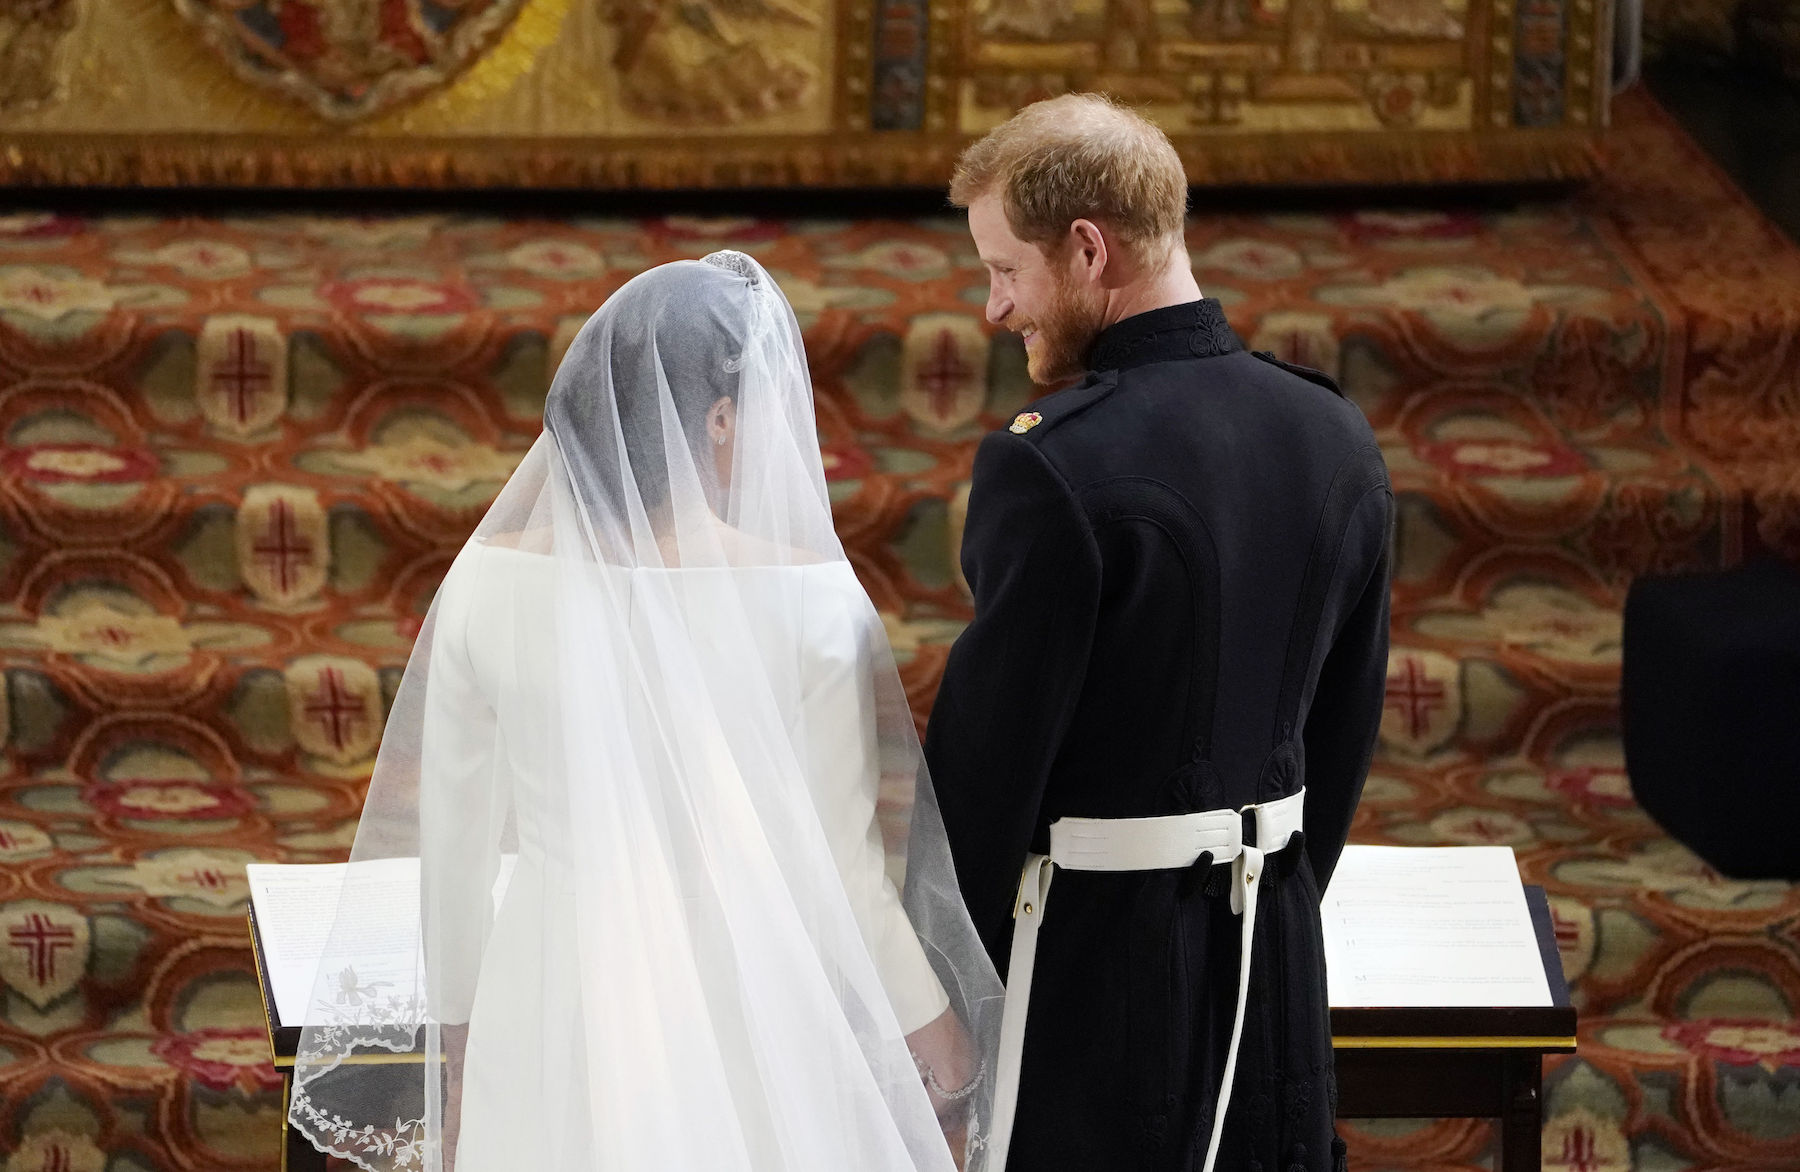 "<div class=""meta image-caption""><div class=""origin-logo origin-image kgo""><span>kgo</span></div><span class=""caption-text"">Britain's Prince Harry, Duke of Sussex (R) stands with US actress Meghan Markle (L) at the altar in St George's Chapel, Windsor Castle. (Owen Humphreys/AFP/Getty Images)</span></div>"